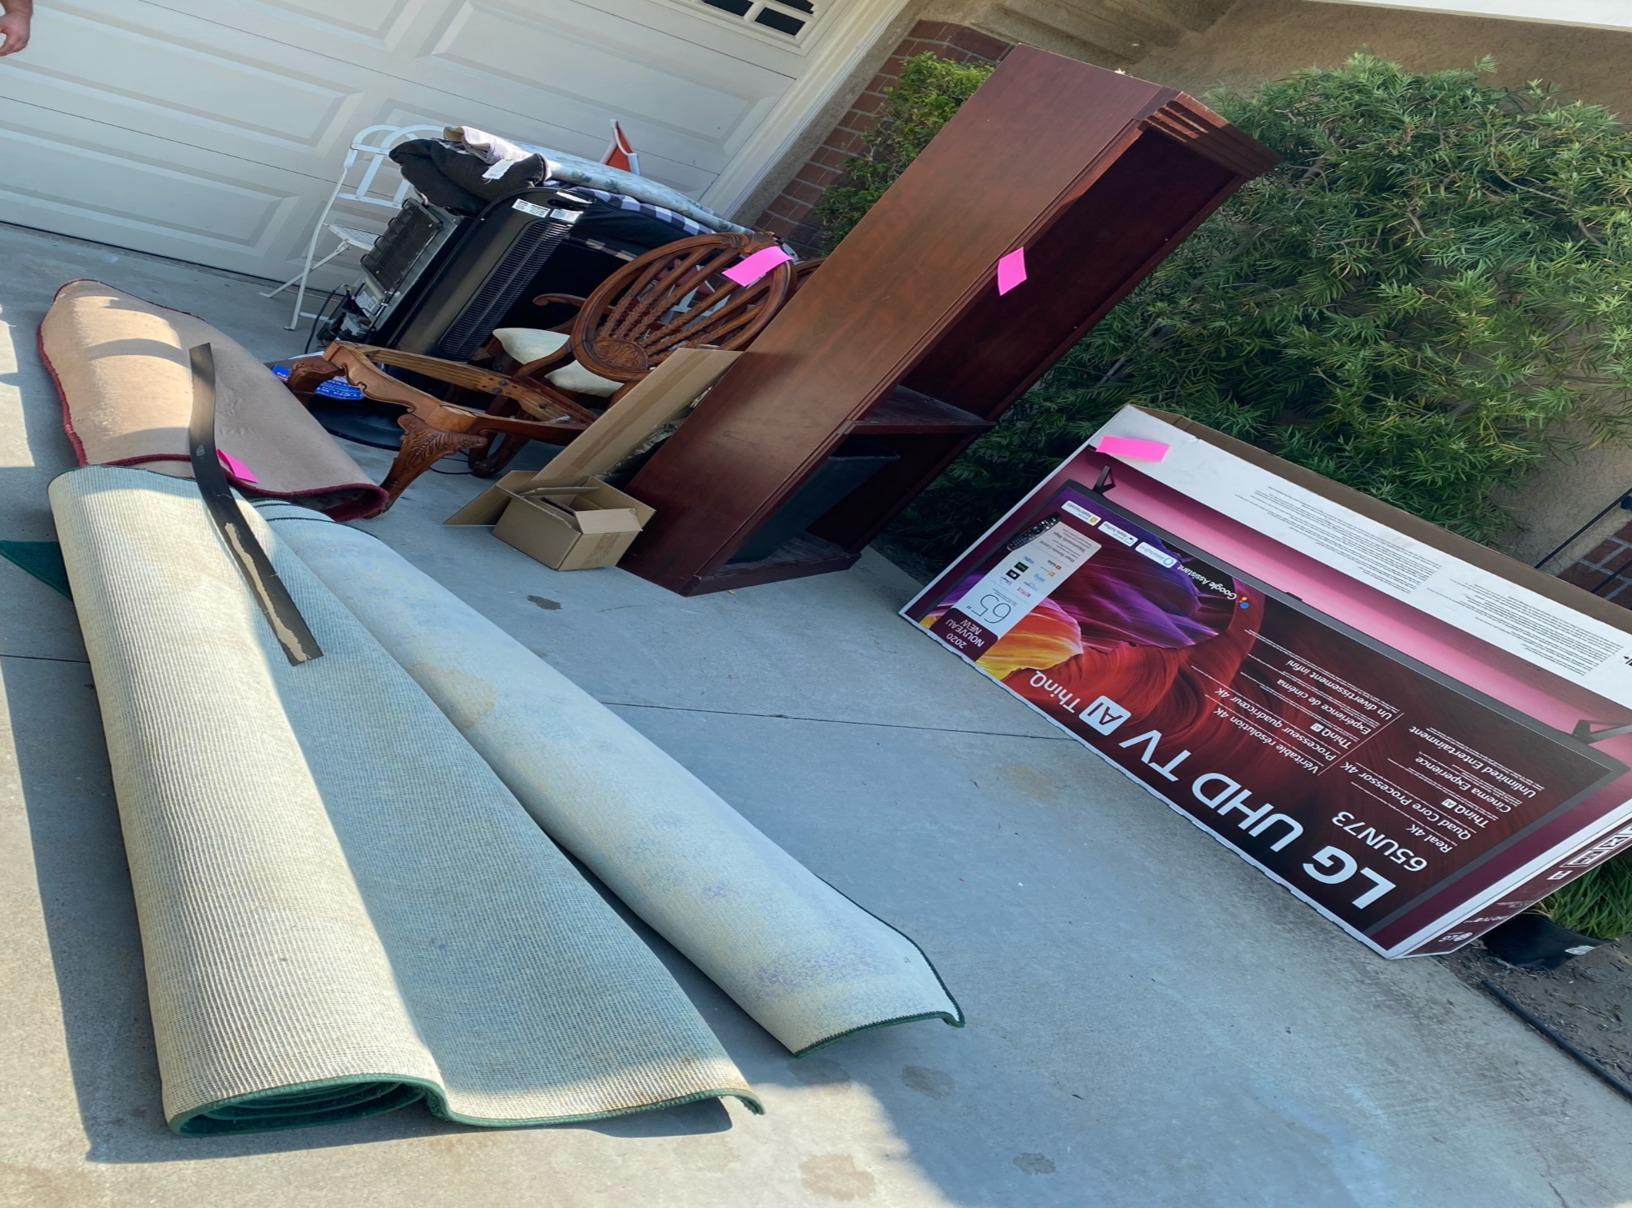 Junk Removal in Trabuco Canyon, CA - Before Photo